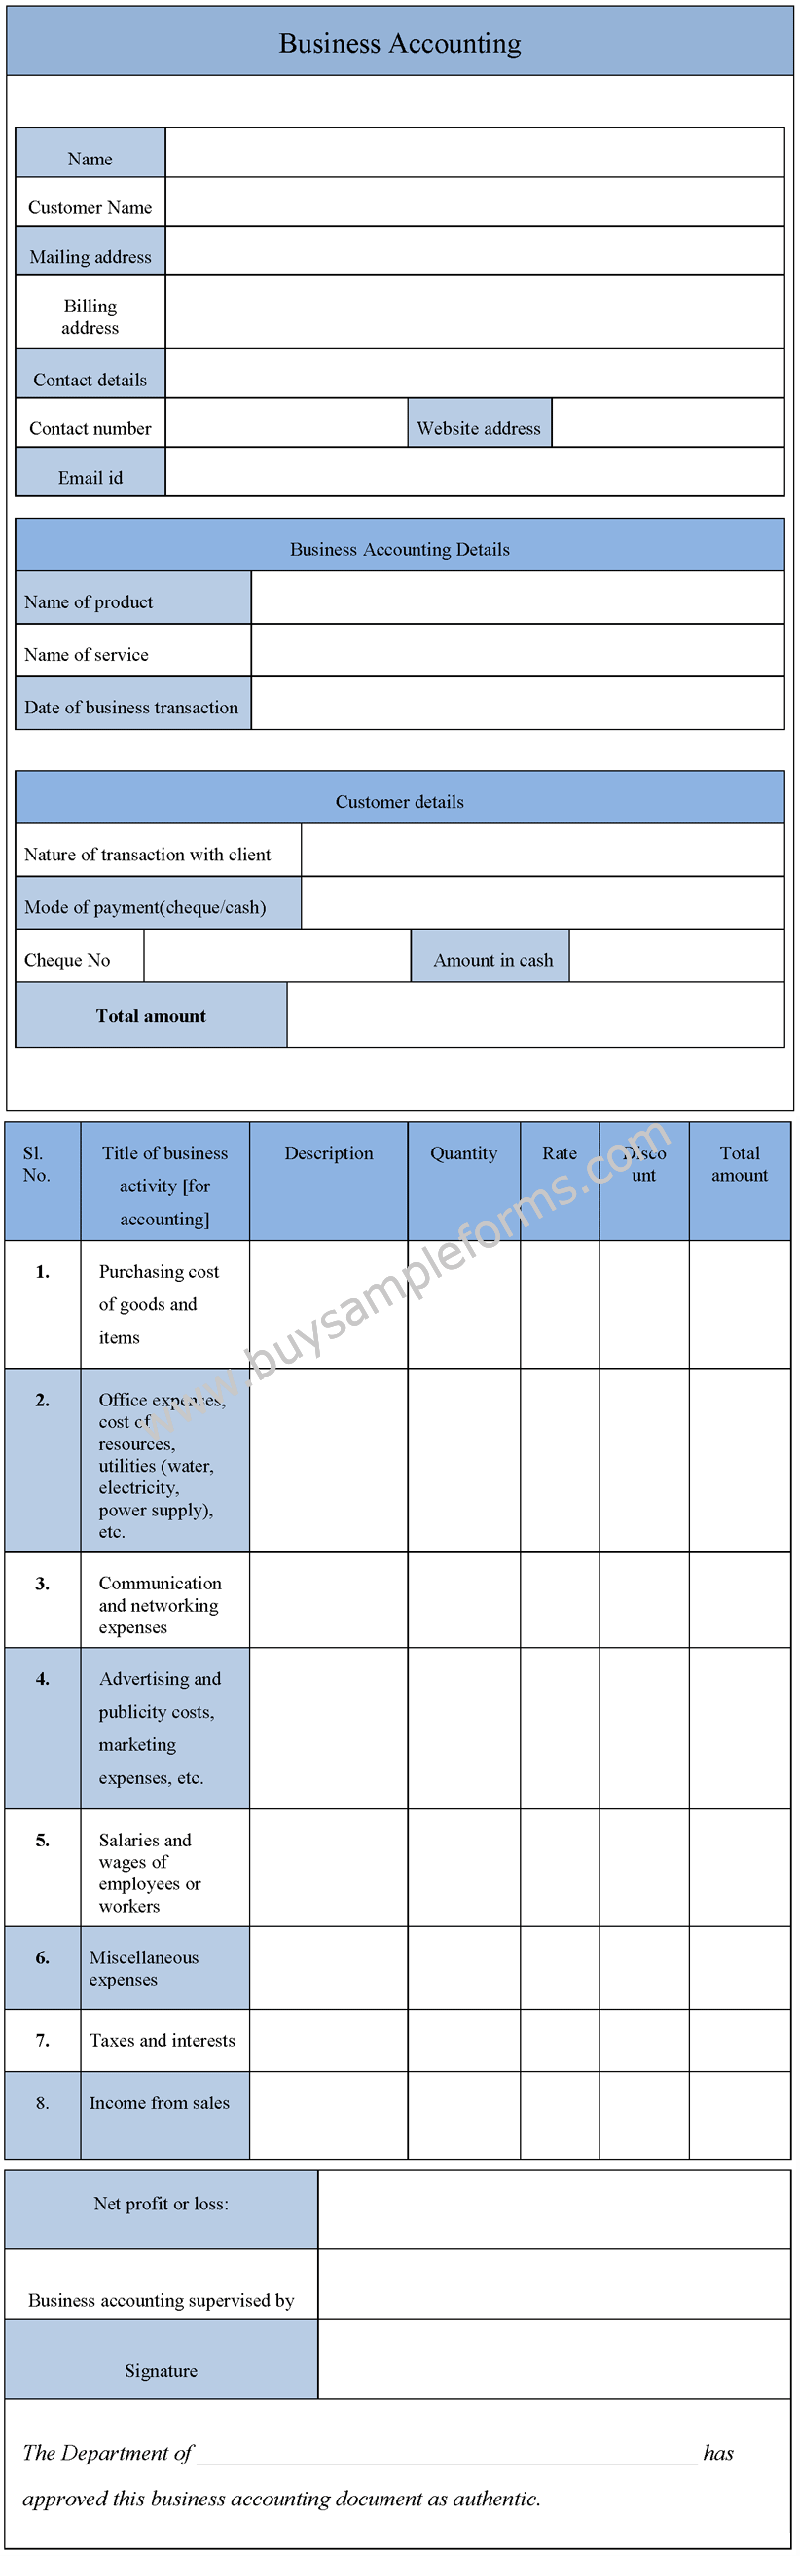 Sample Business Accounting Form, Accounting Template